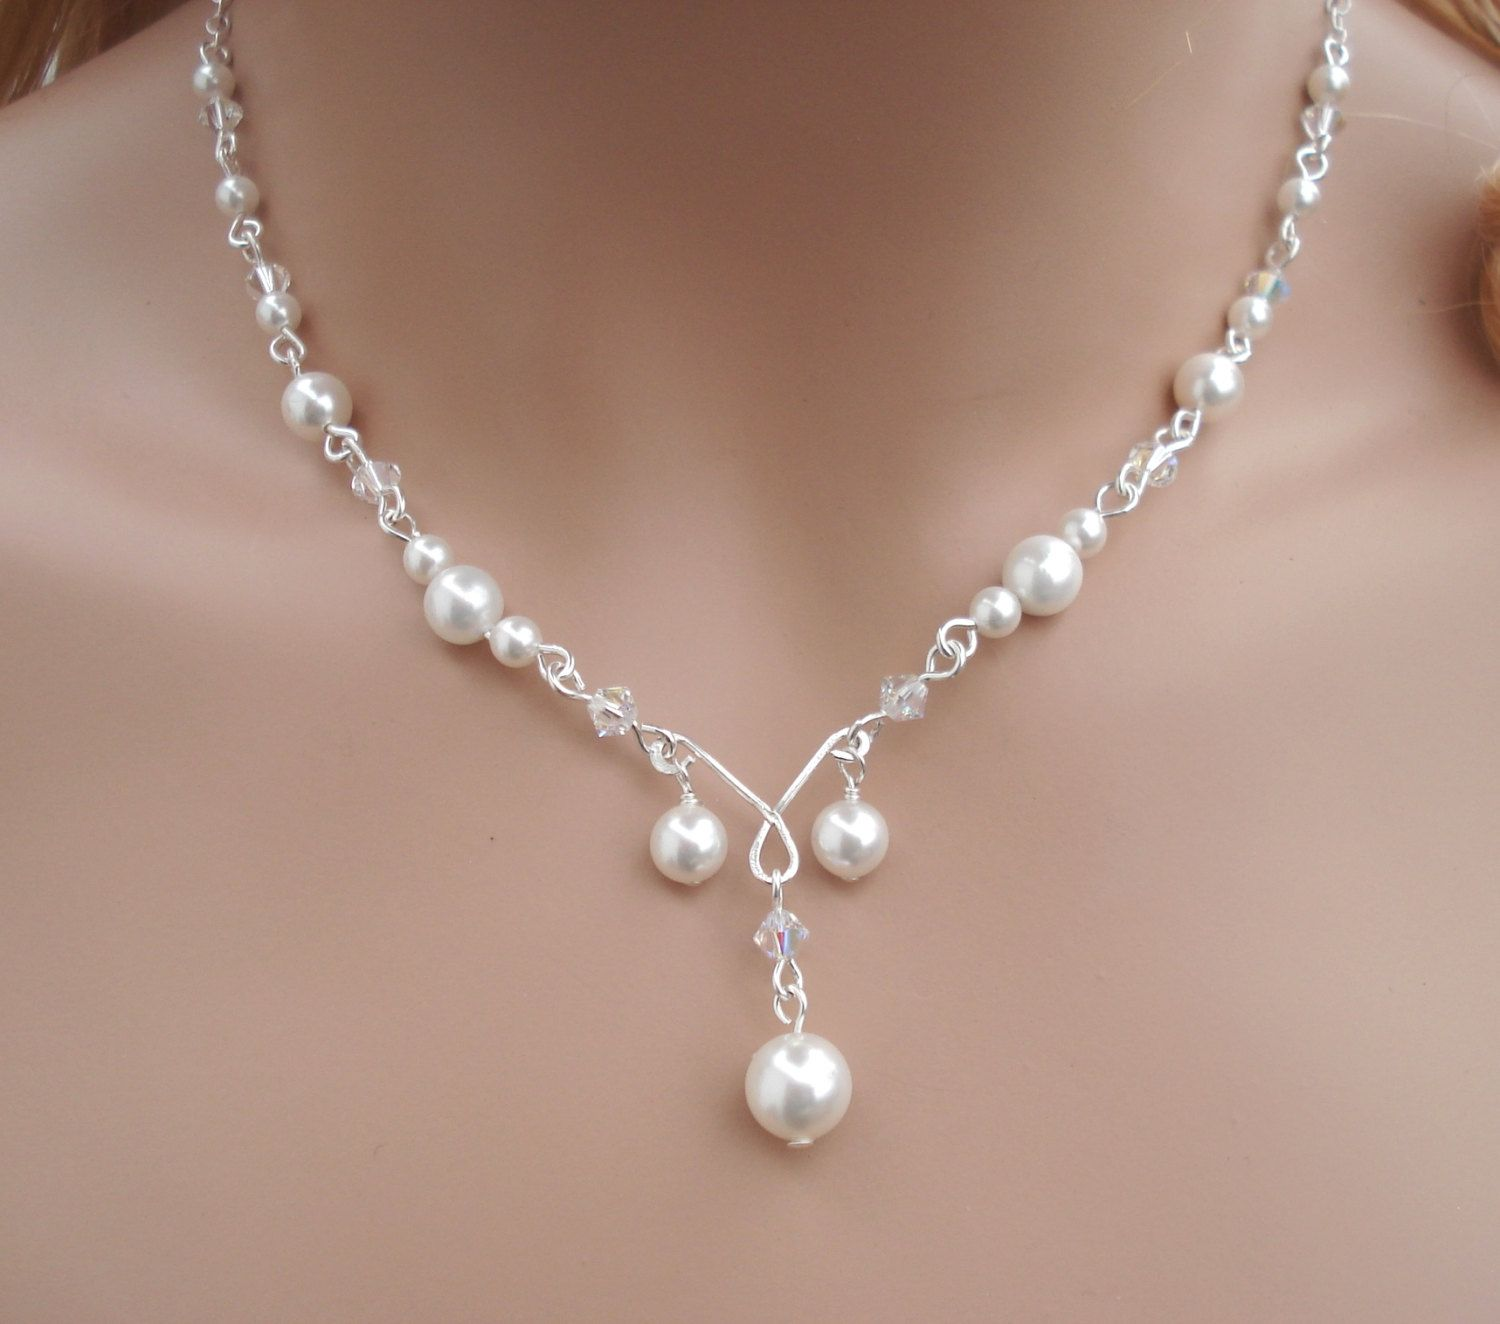 Elegant Bridal Jewelry Set Wired Crystal Pearl Necklace